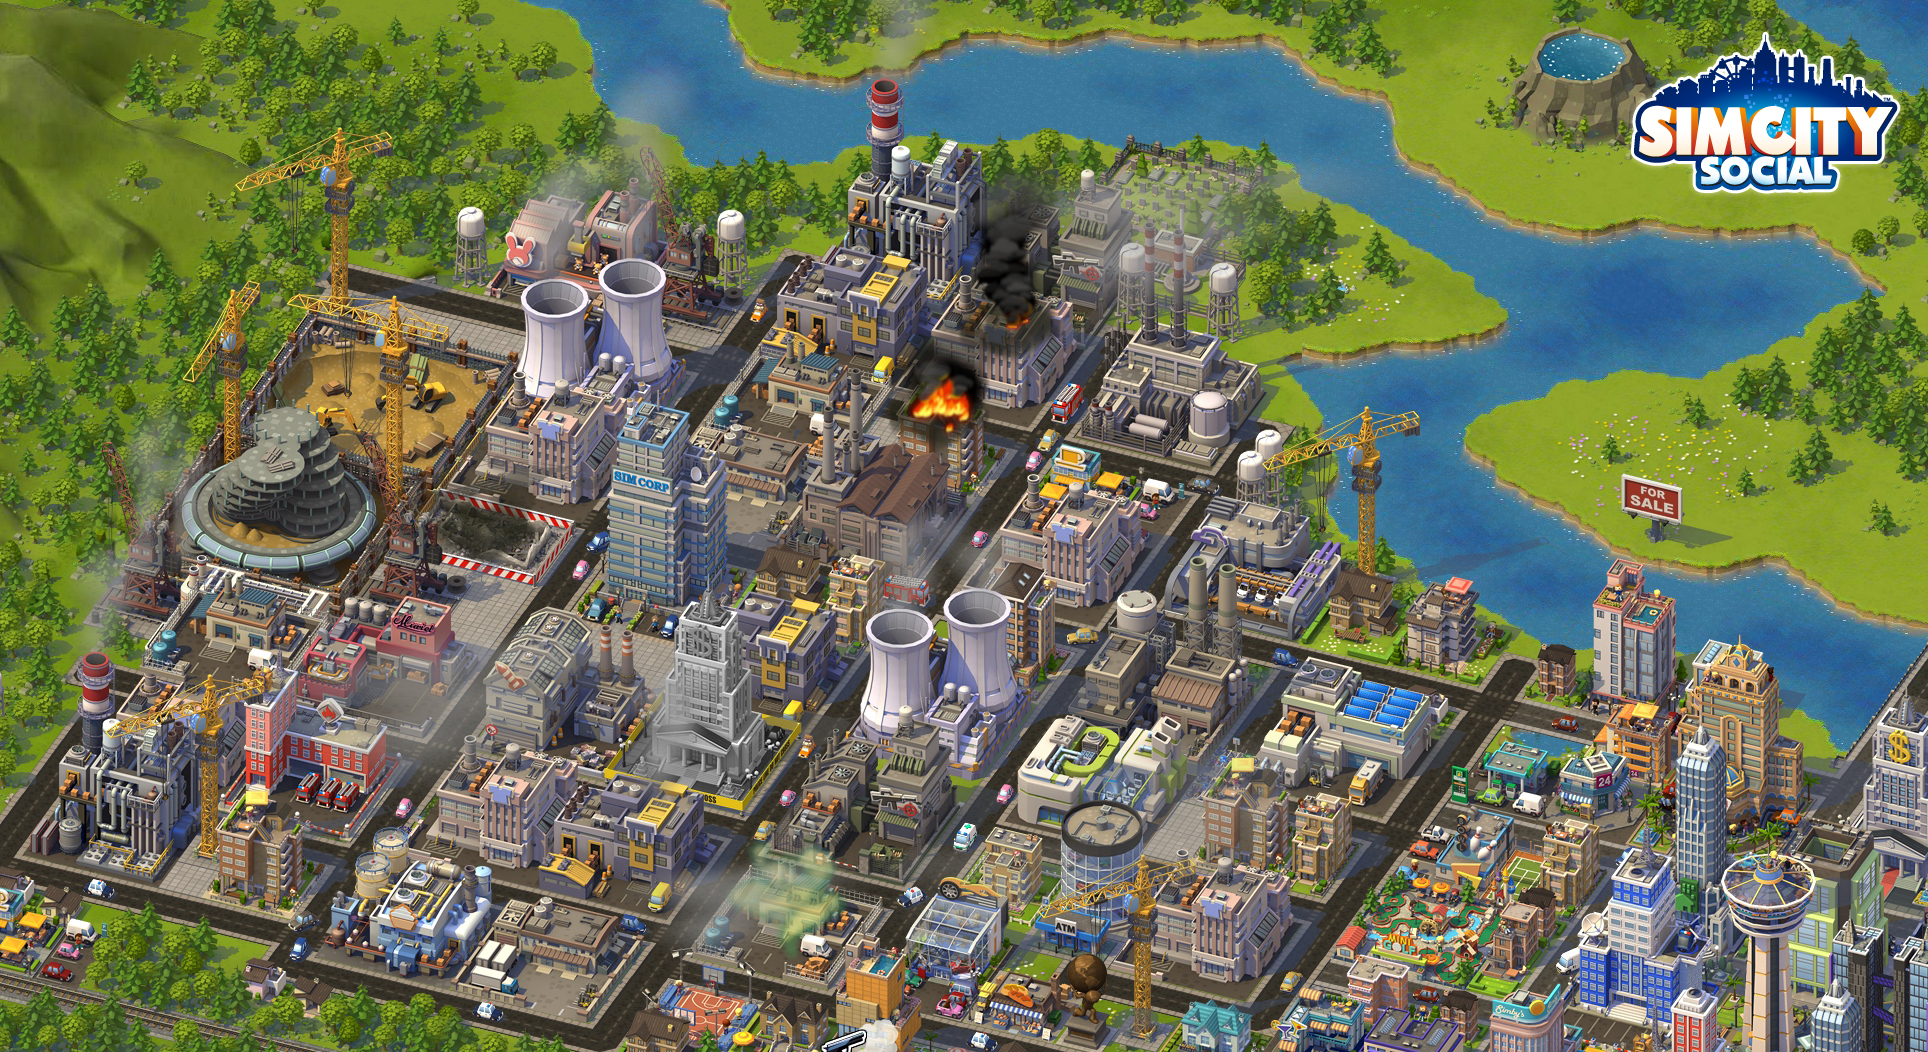 SimCity Social